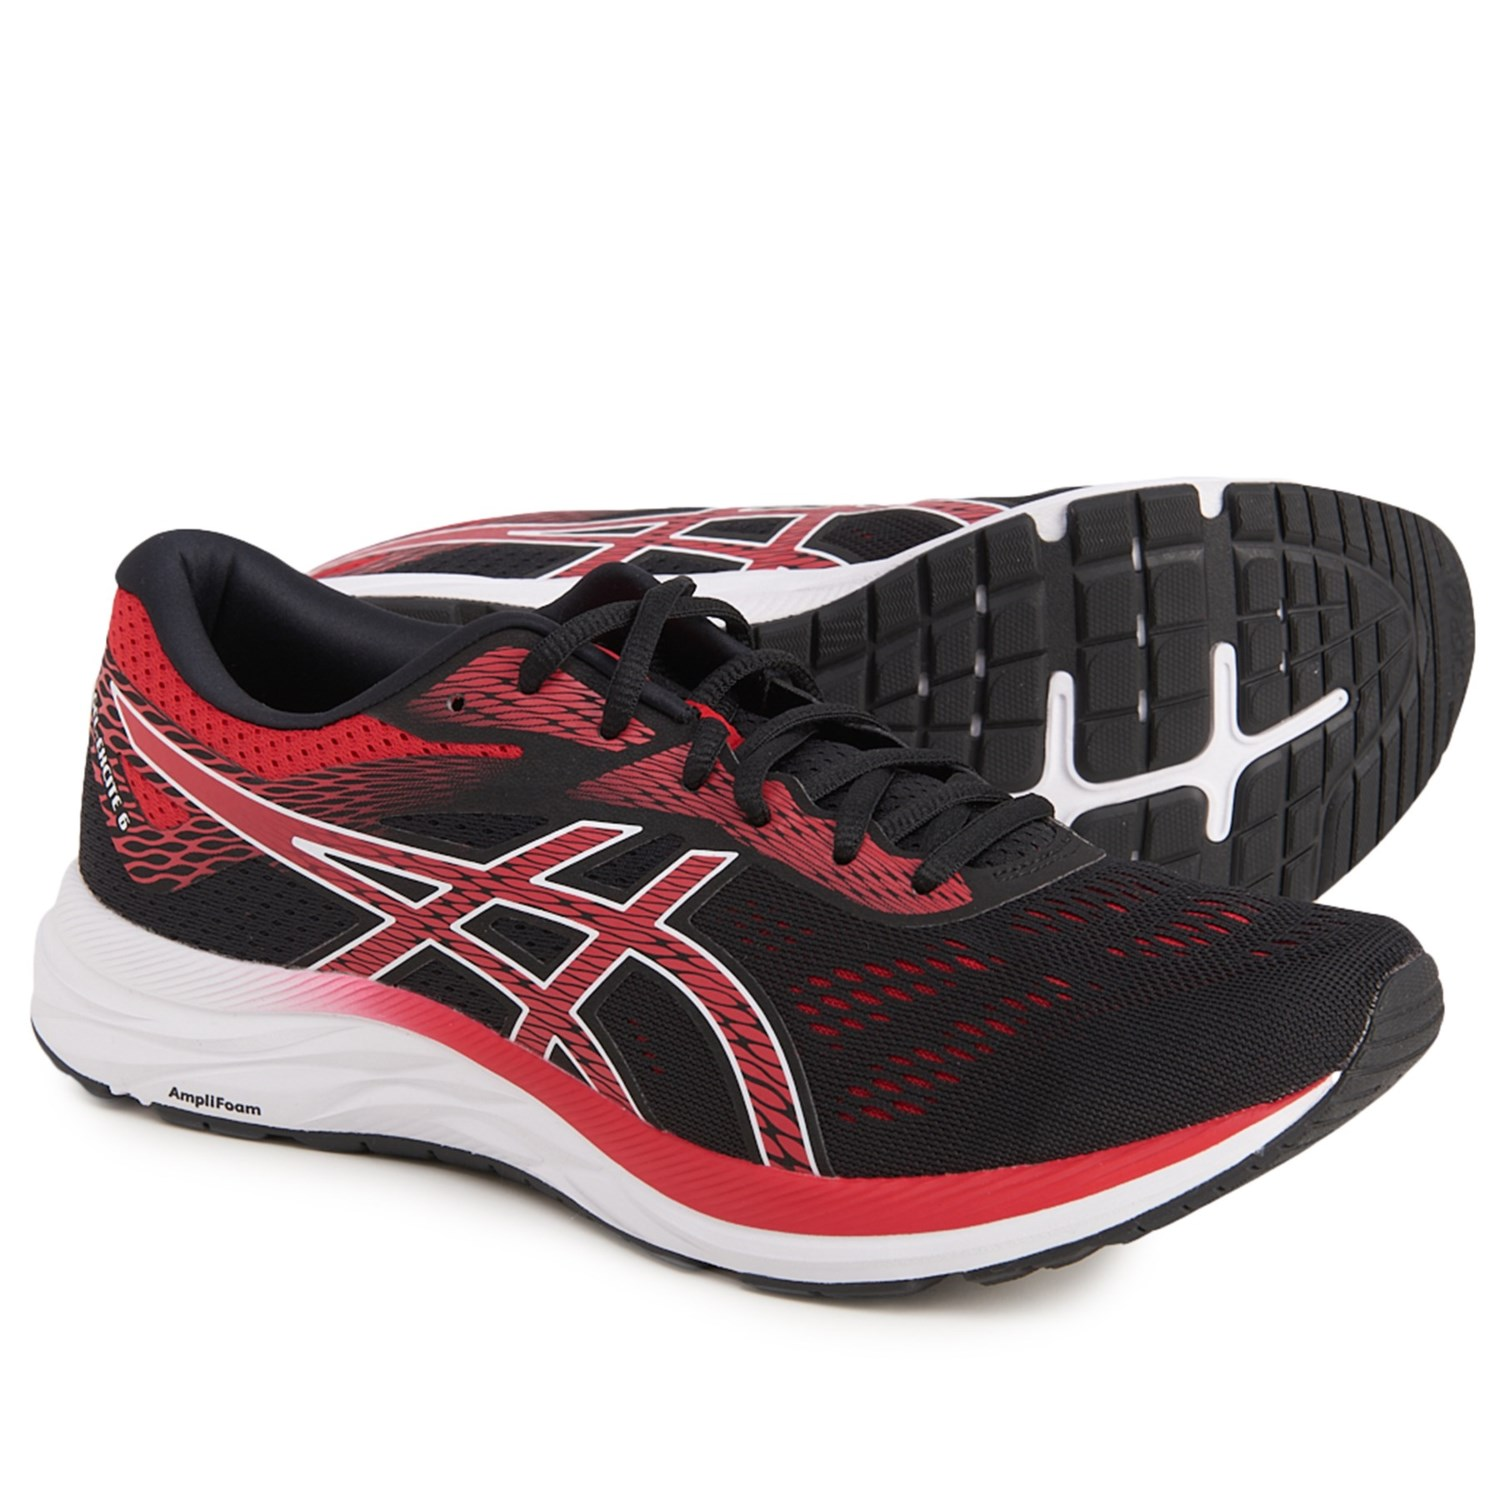 ASICS GEL® Excite 6 Running Shoes (For